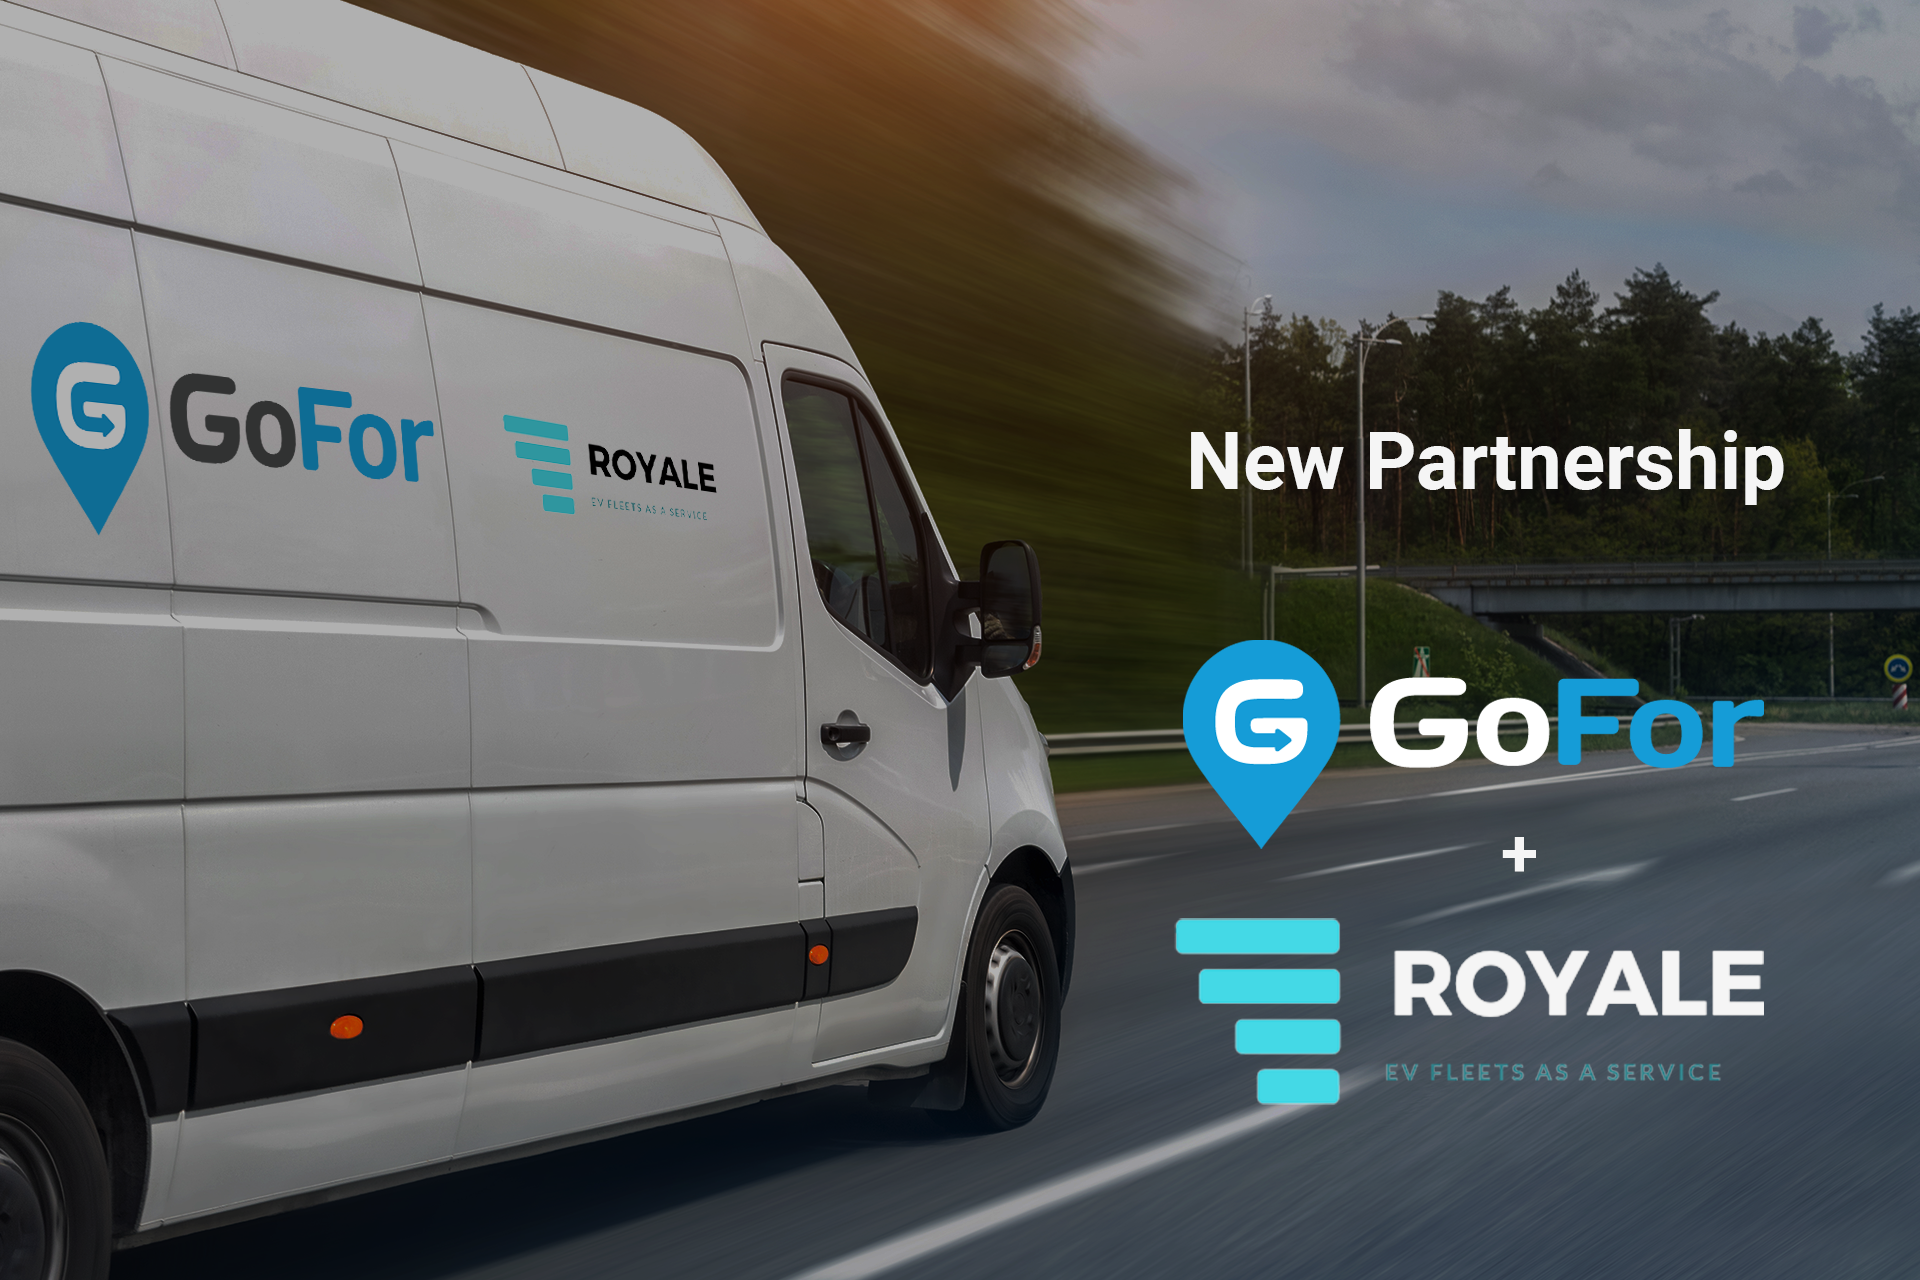 On-demand Delivery Pioneer GoFor Drives Industry into a Clean, Green Future, in Partnership with Royale EV to Electrify Vehicle Fleets